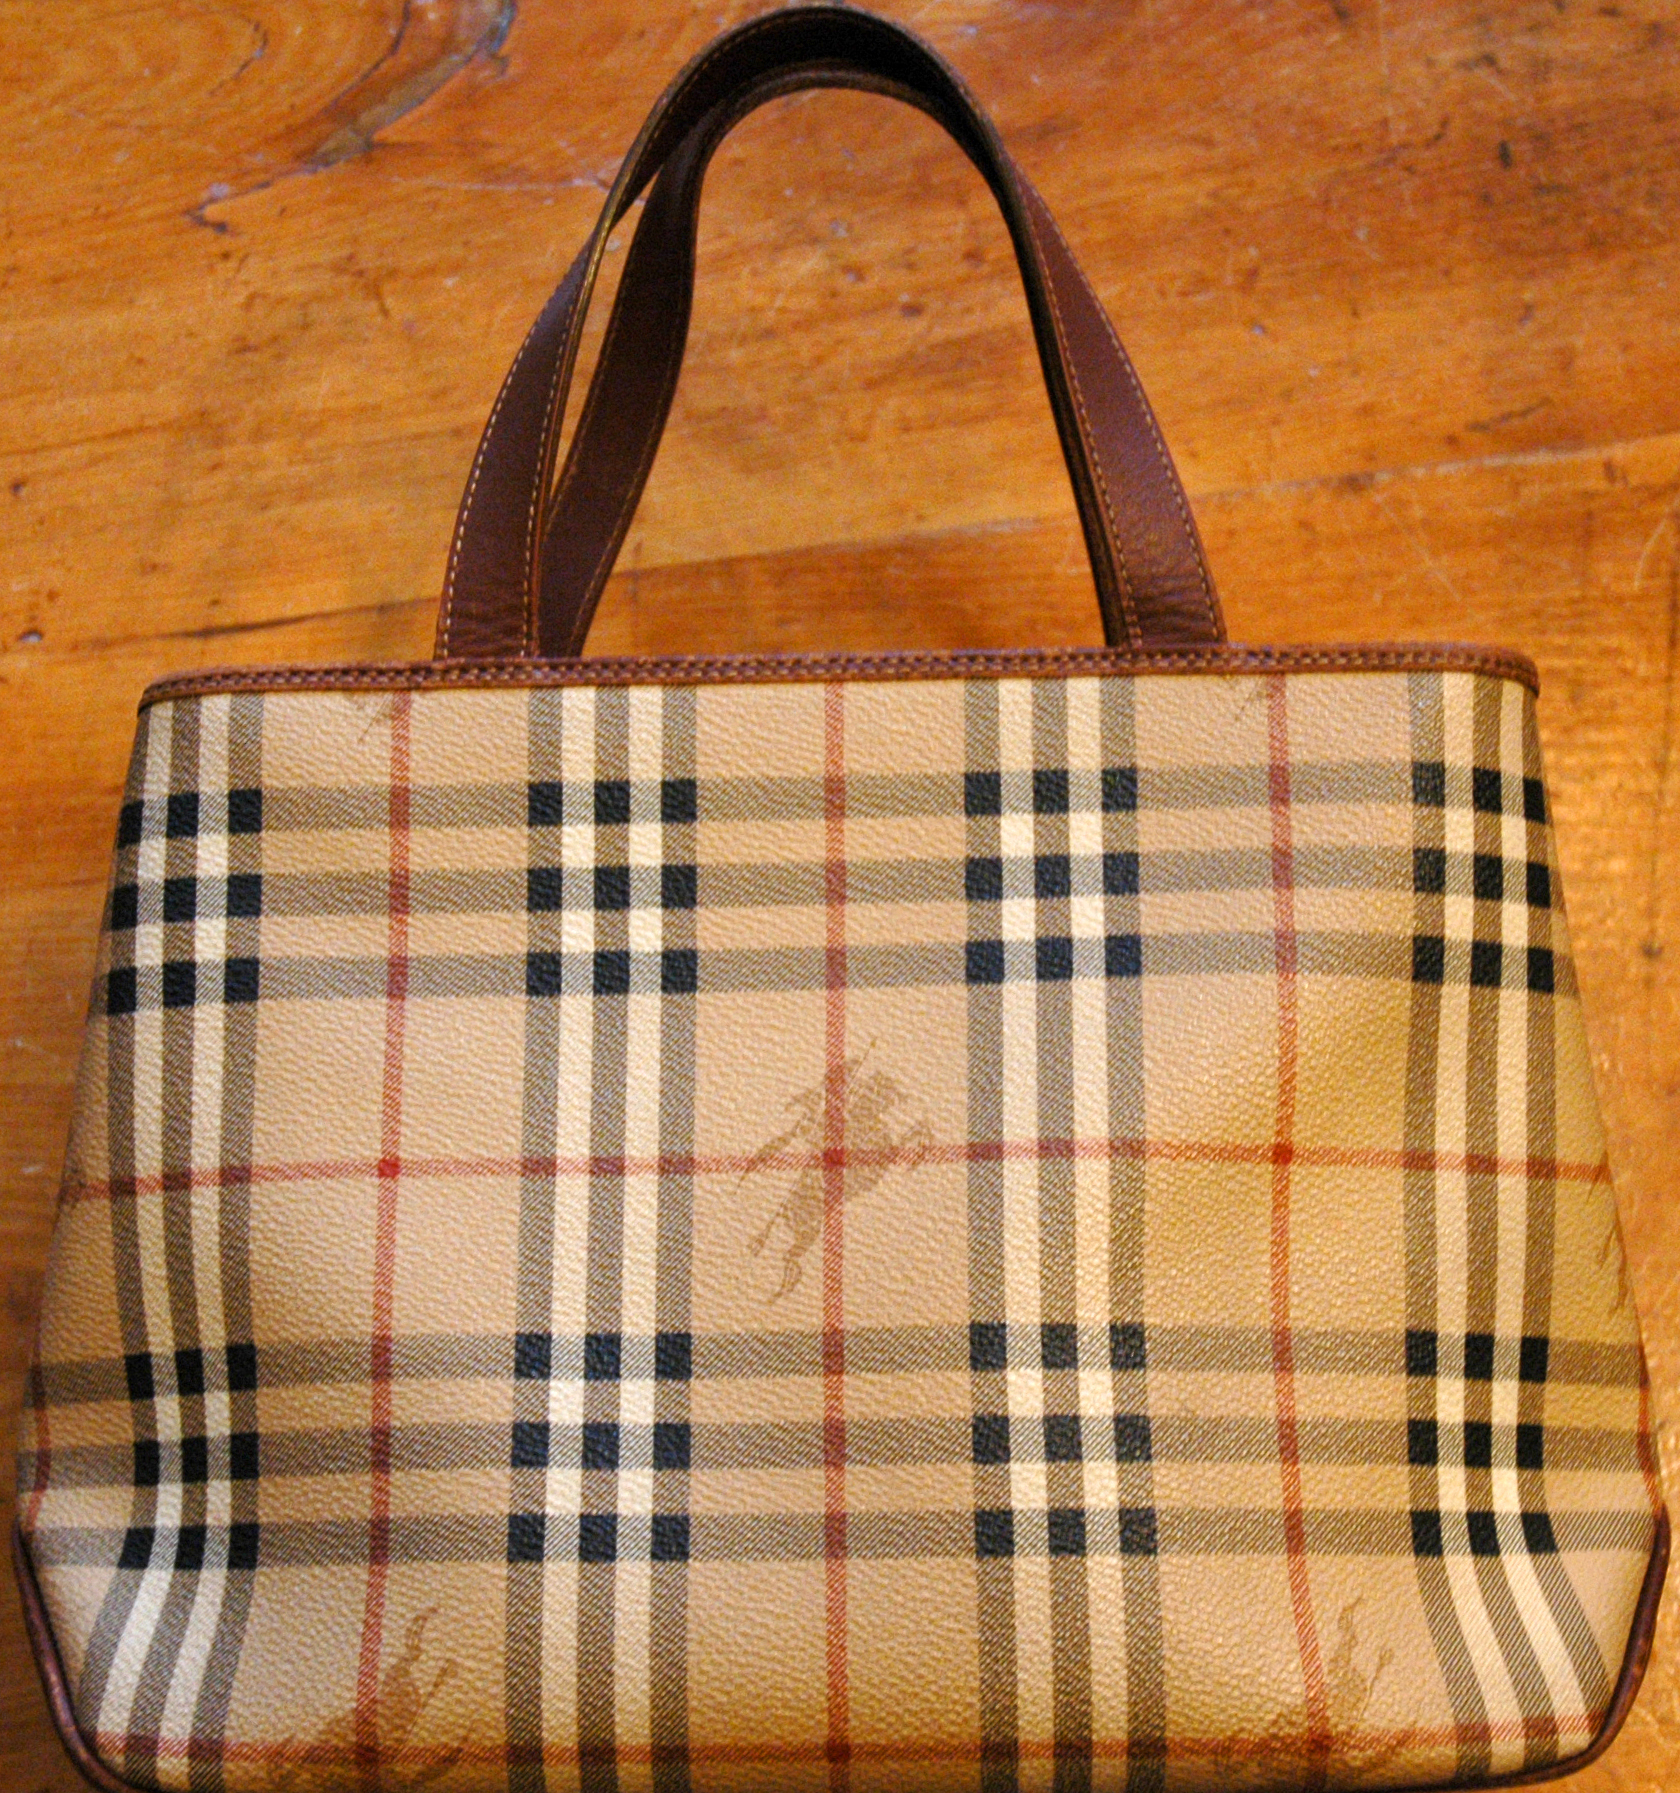 File Burberry handbag.jpg - Wikipedia 201918dedd